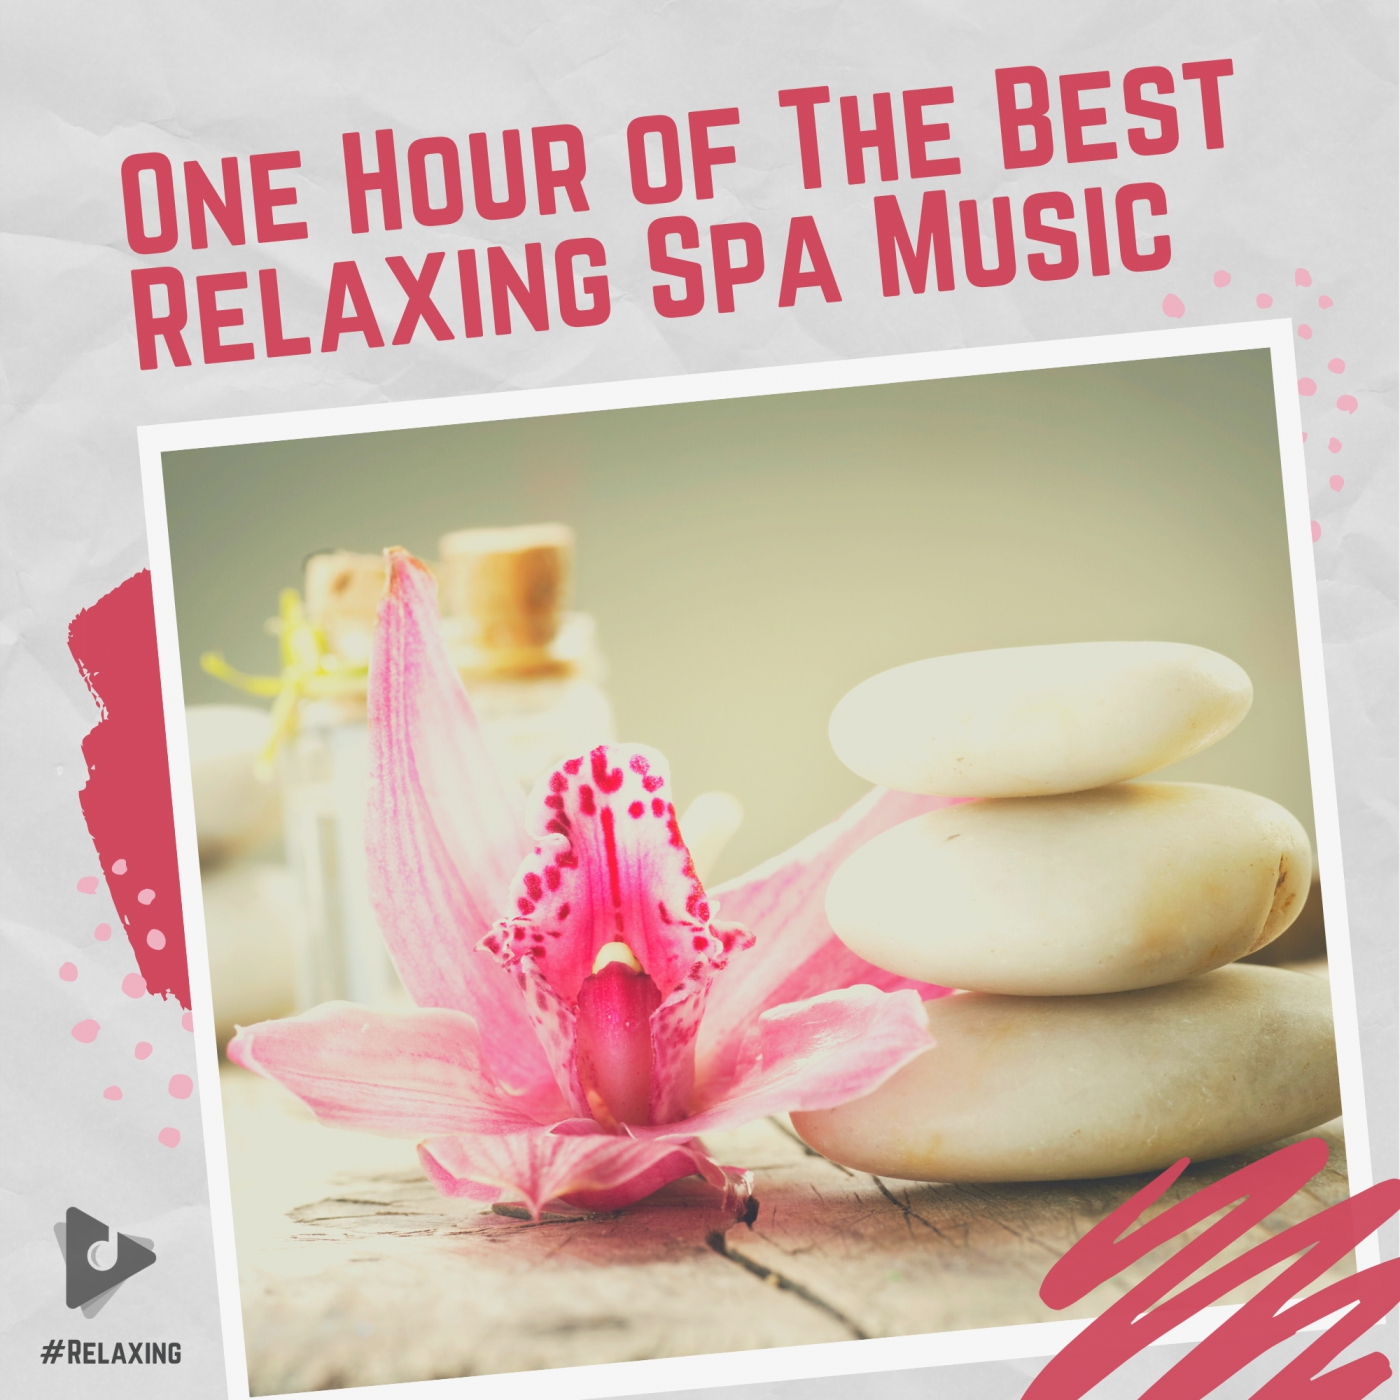 One Hour of The Best Relaxing Spa Music